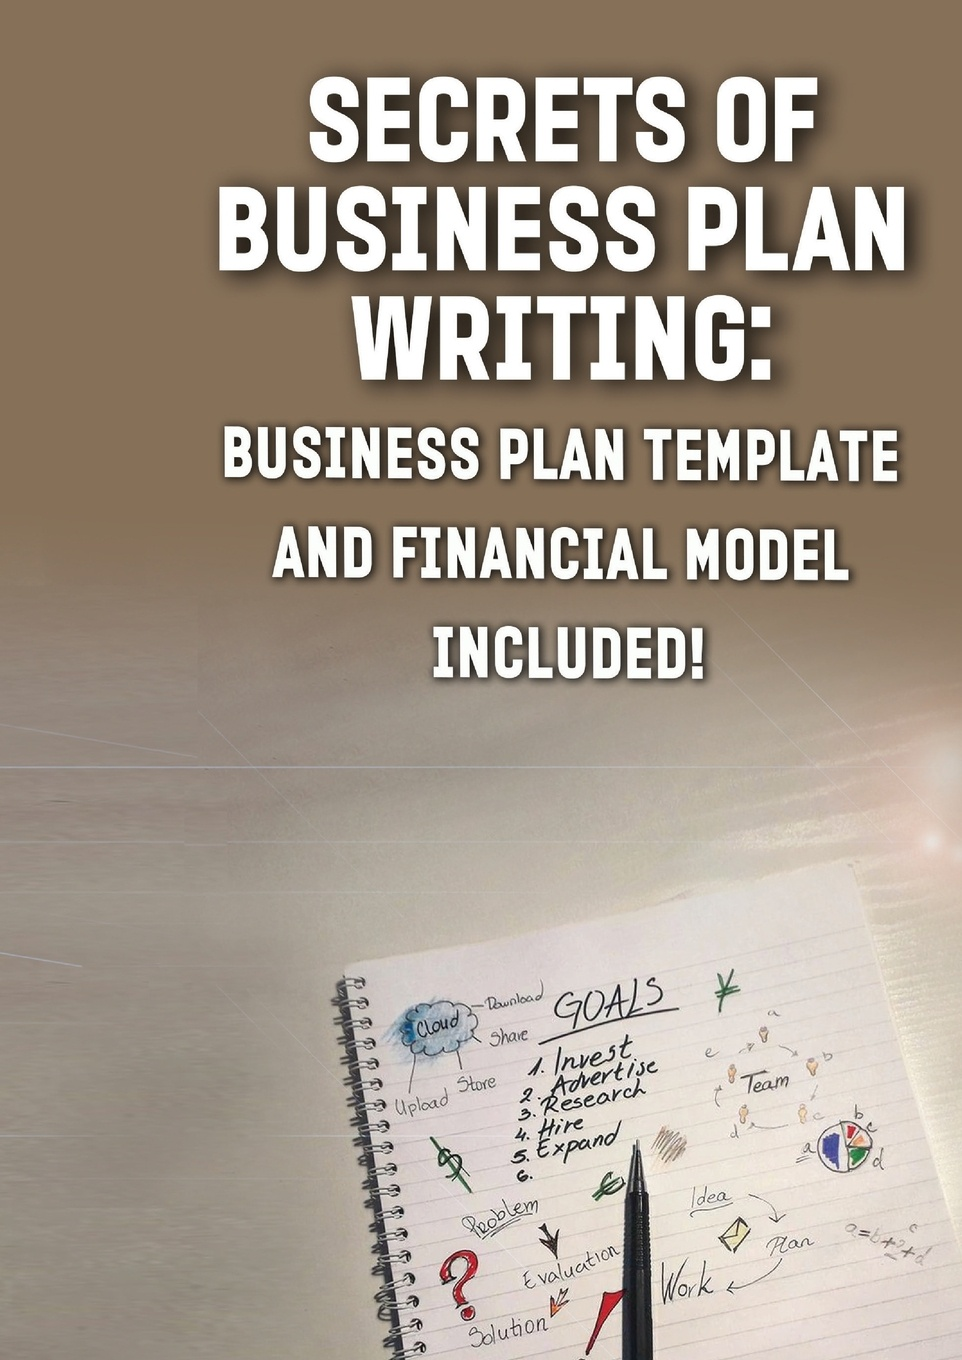 Andrei Besedin Secrets of Business Plan Writing. : Business Plan Template and Financial Model Included! horan the one page business plan uk